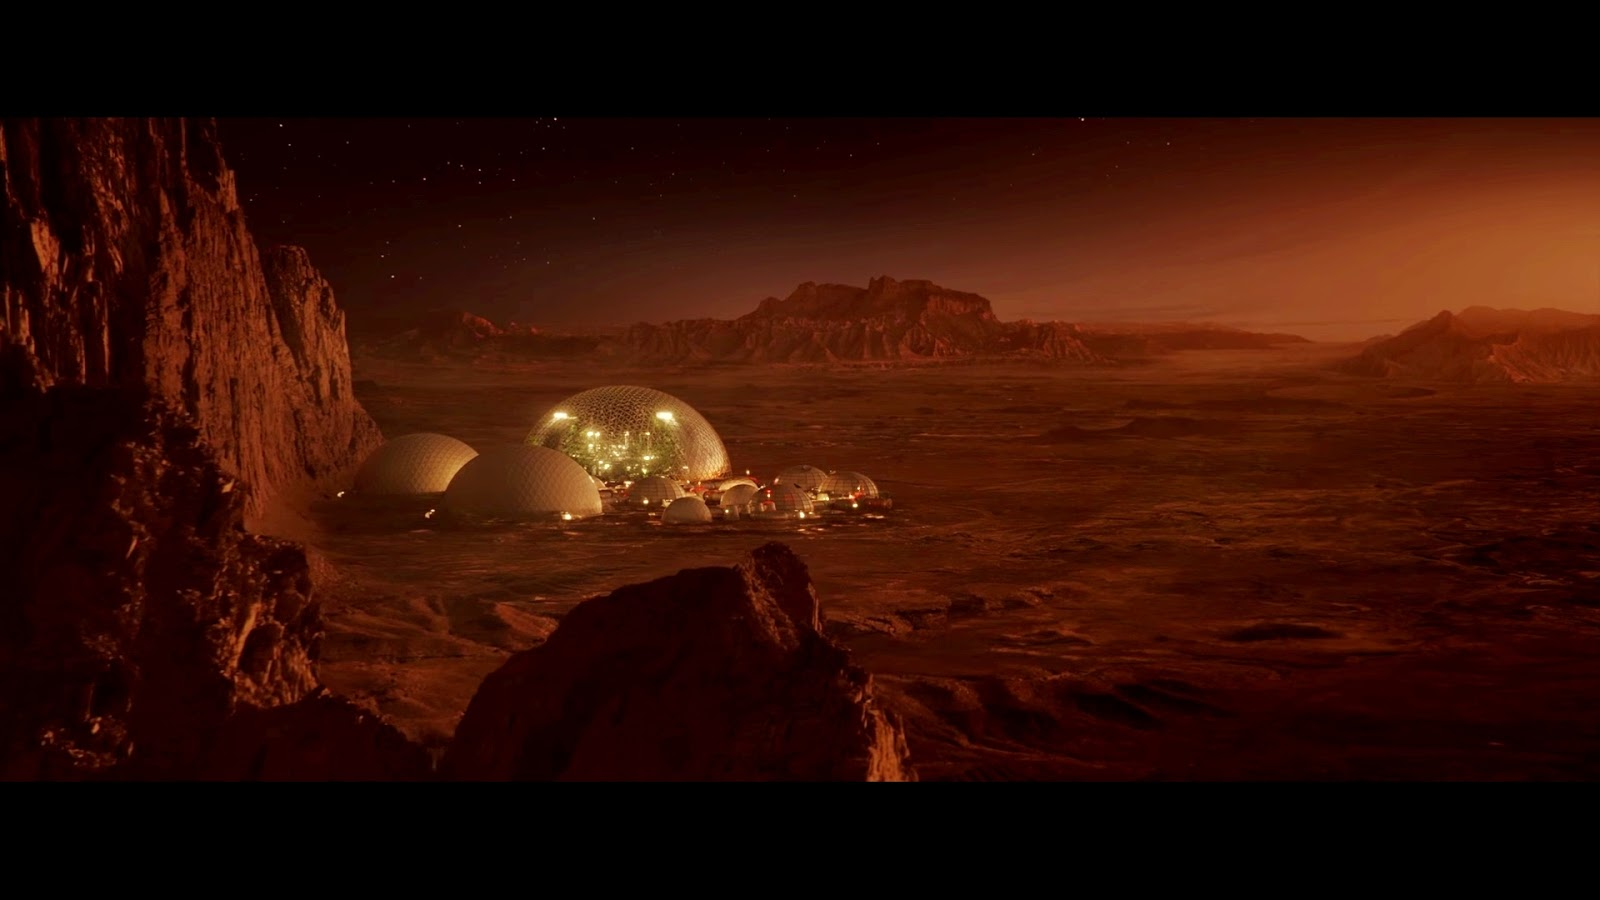 East Texas colony on Mars - The Space Between Us movie wallpaper